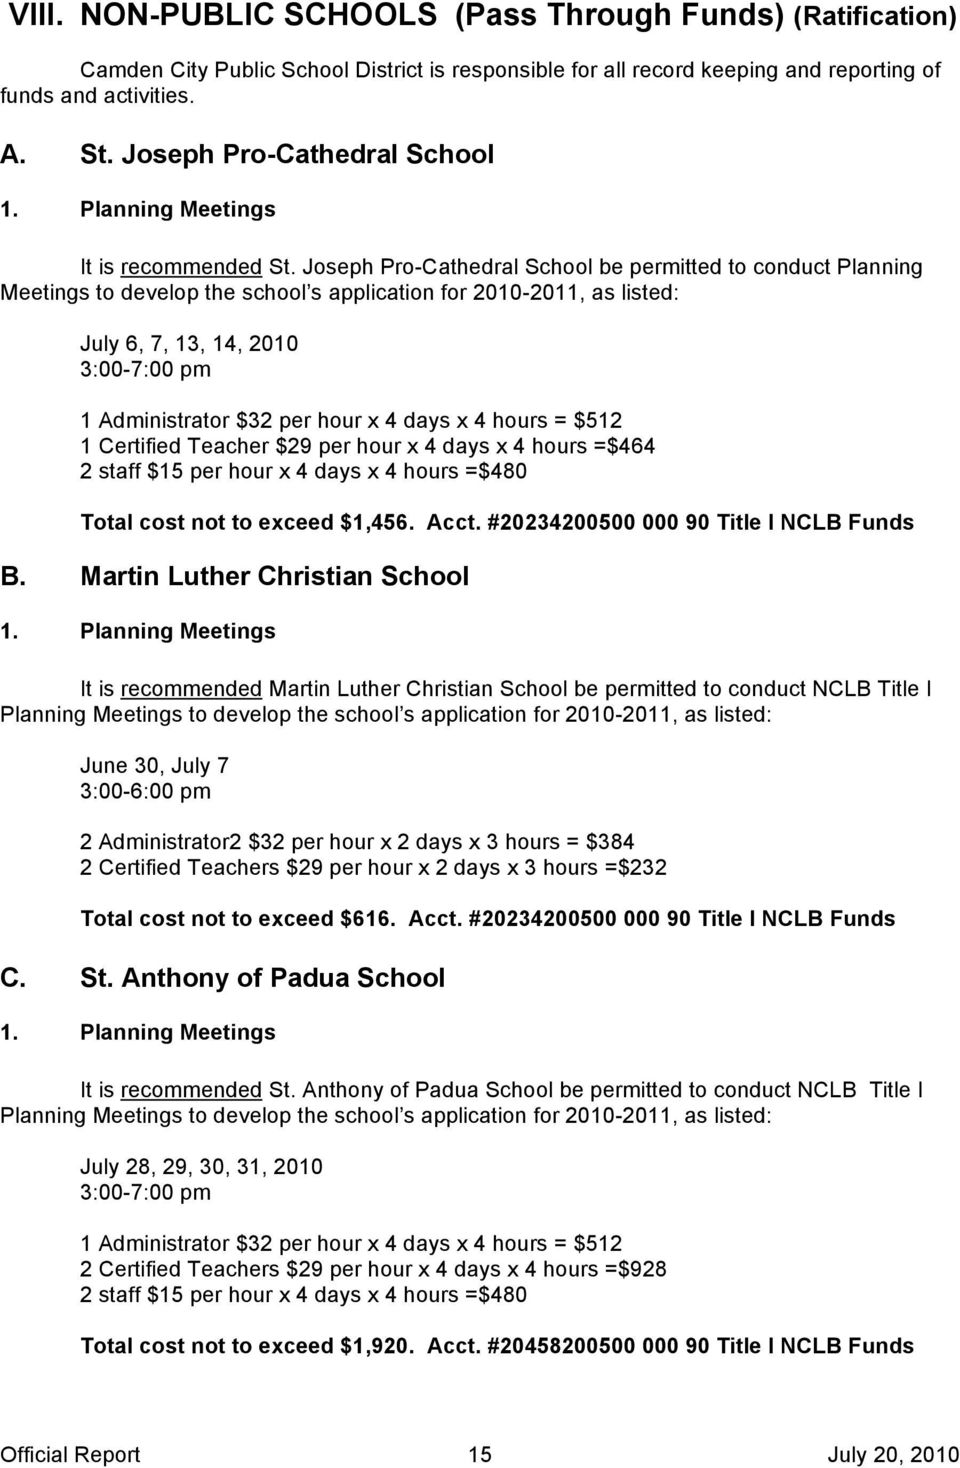 Joseph Pro-Cathedral School be permitted to conduct Planning Meetings to develop the school s application for 2010-2011, as listed: July 6, 7, 13, 14, 2010 3:00-7:00 pm 1 Administrator $32 per hour x